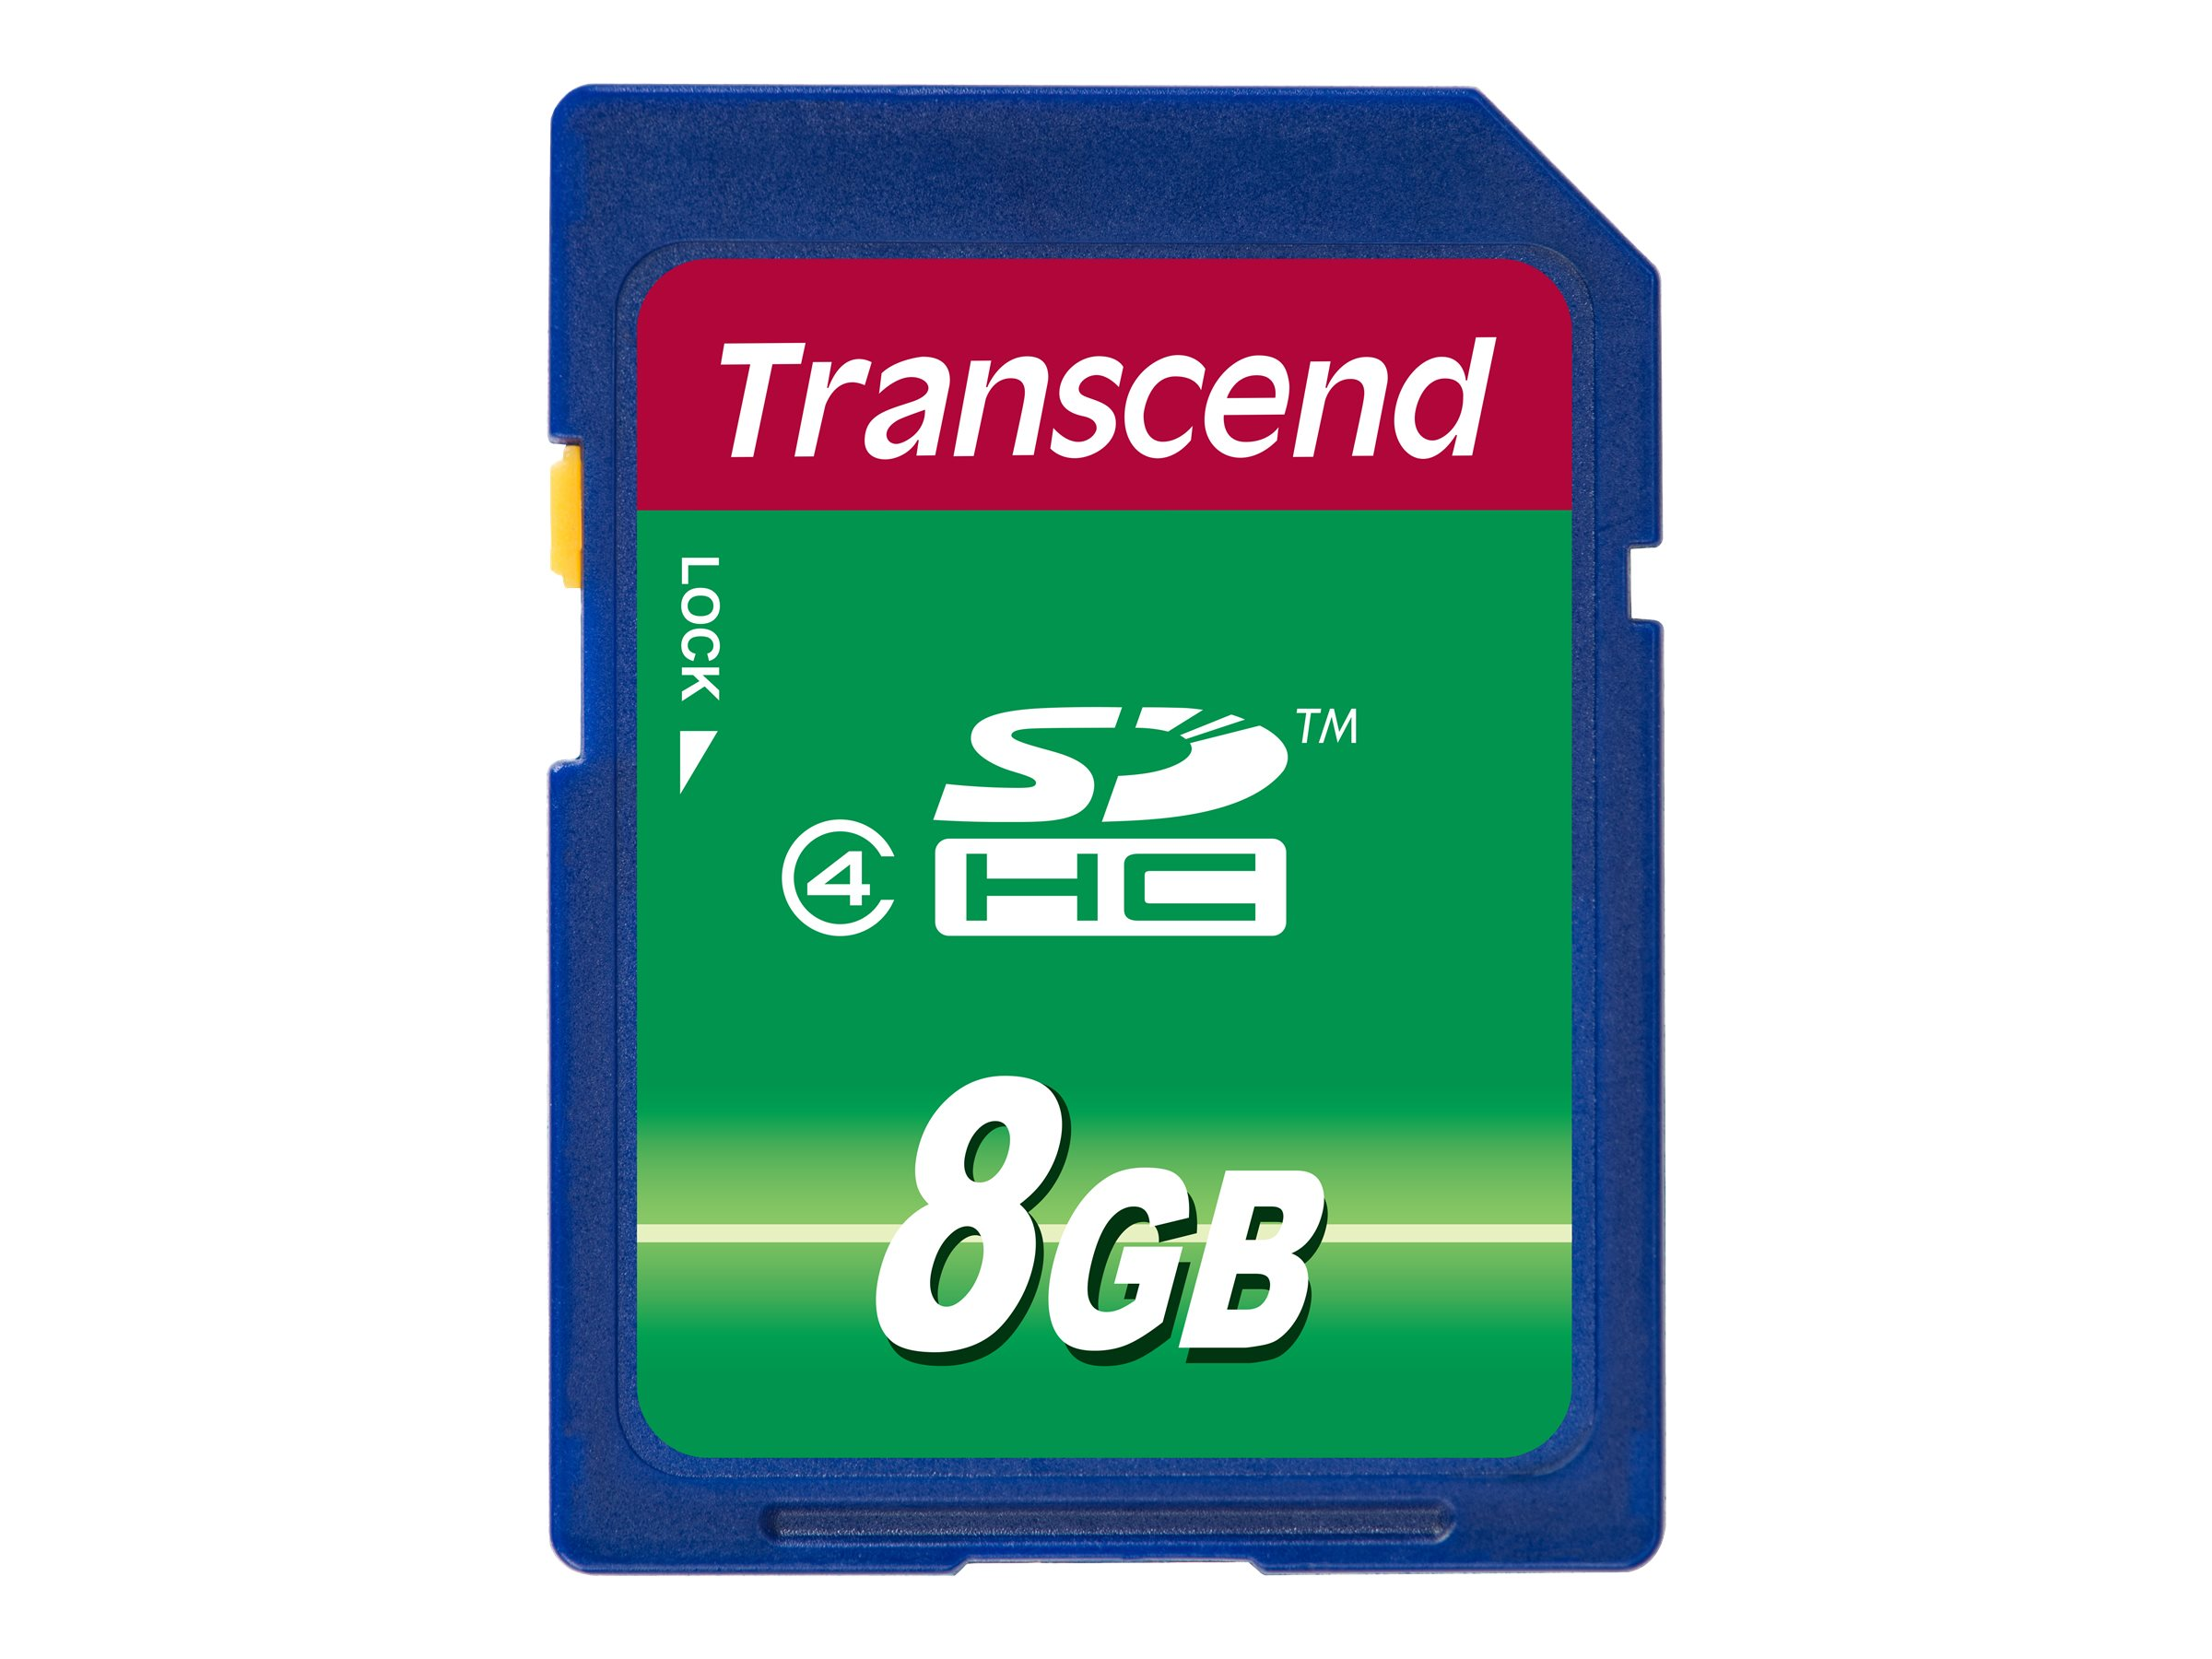 Transcend - Flash-Speicherkarte - 8 GB - Class 4 - SDHC